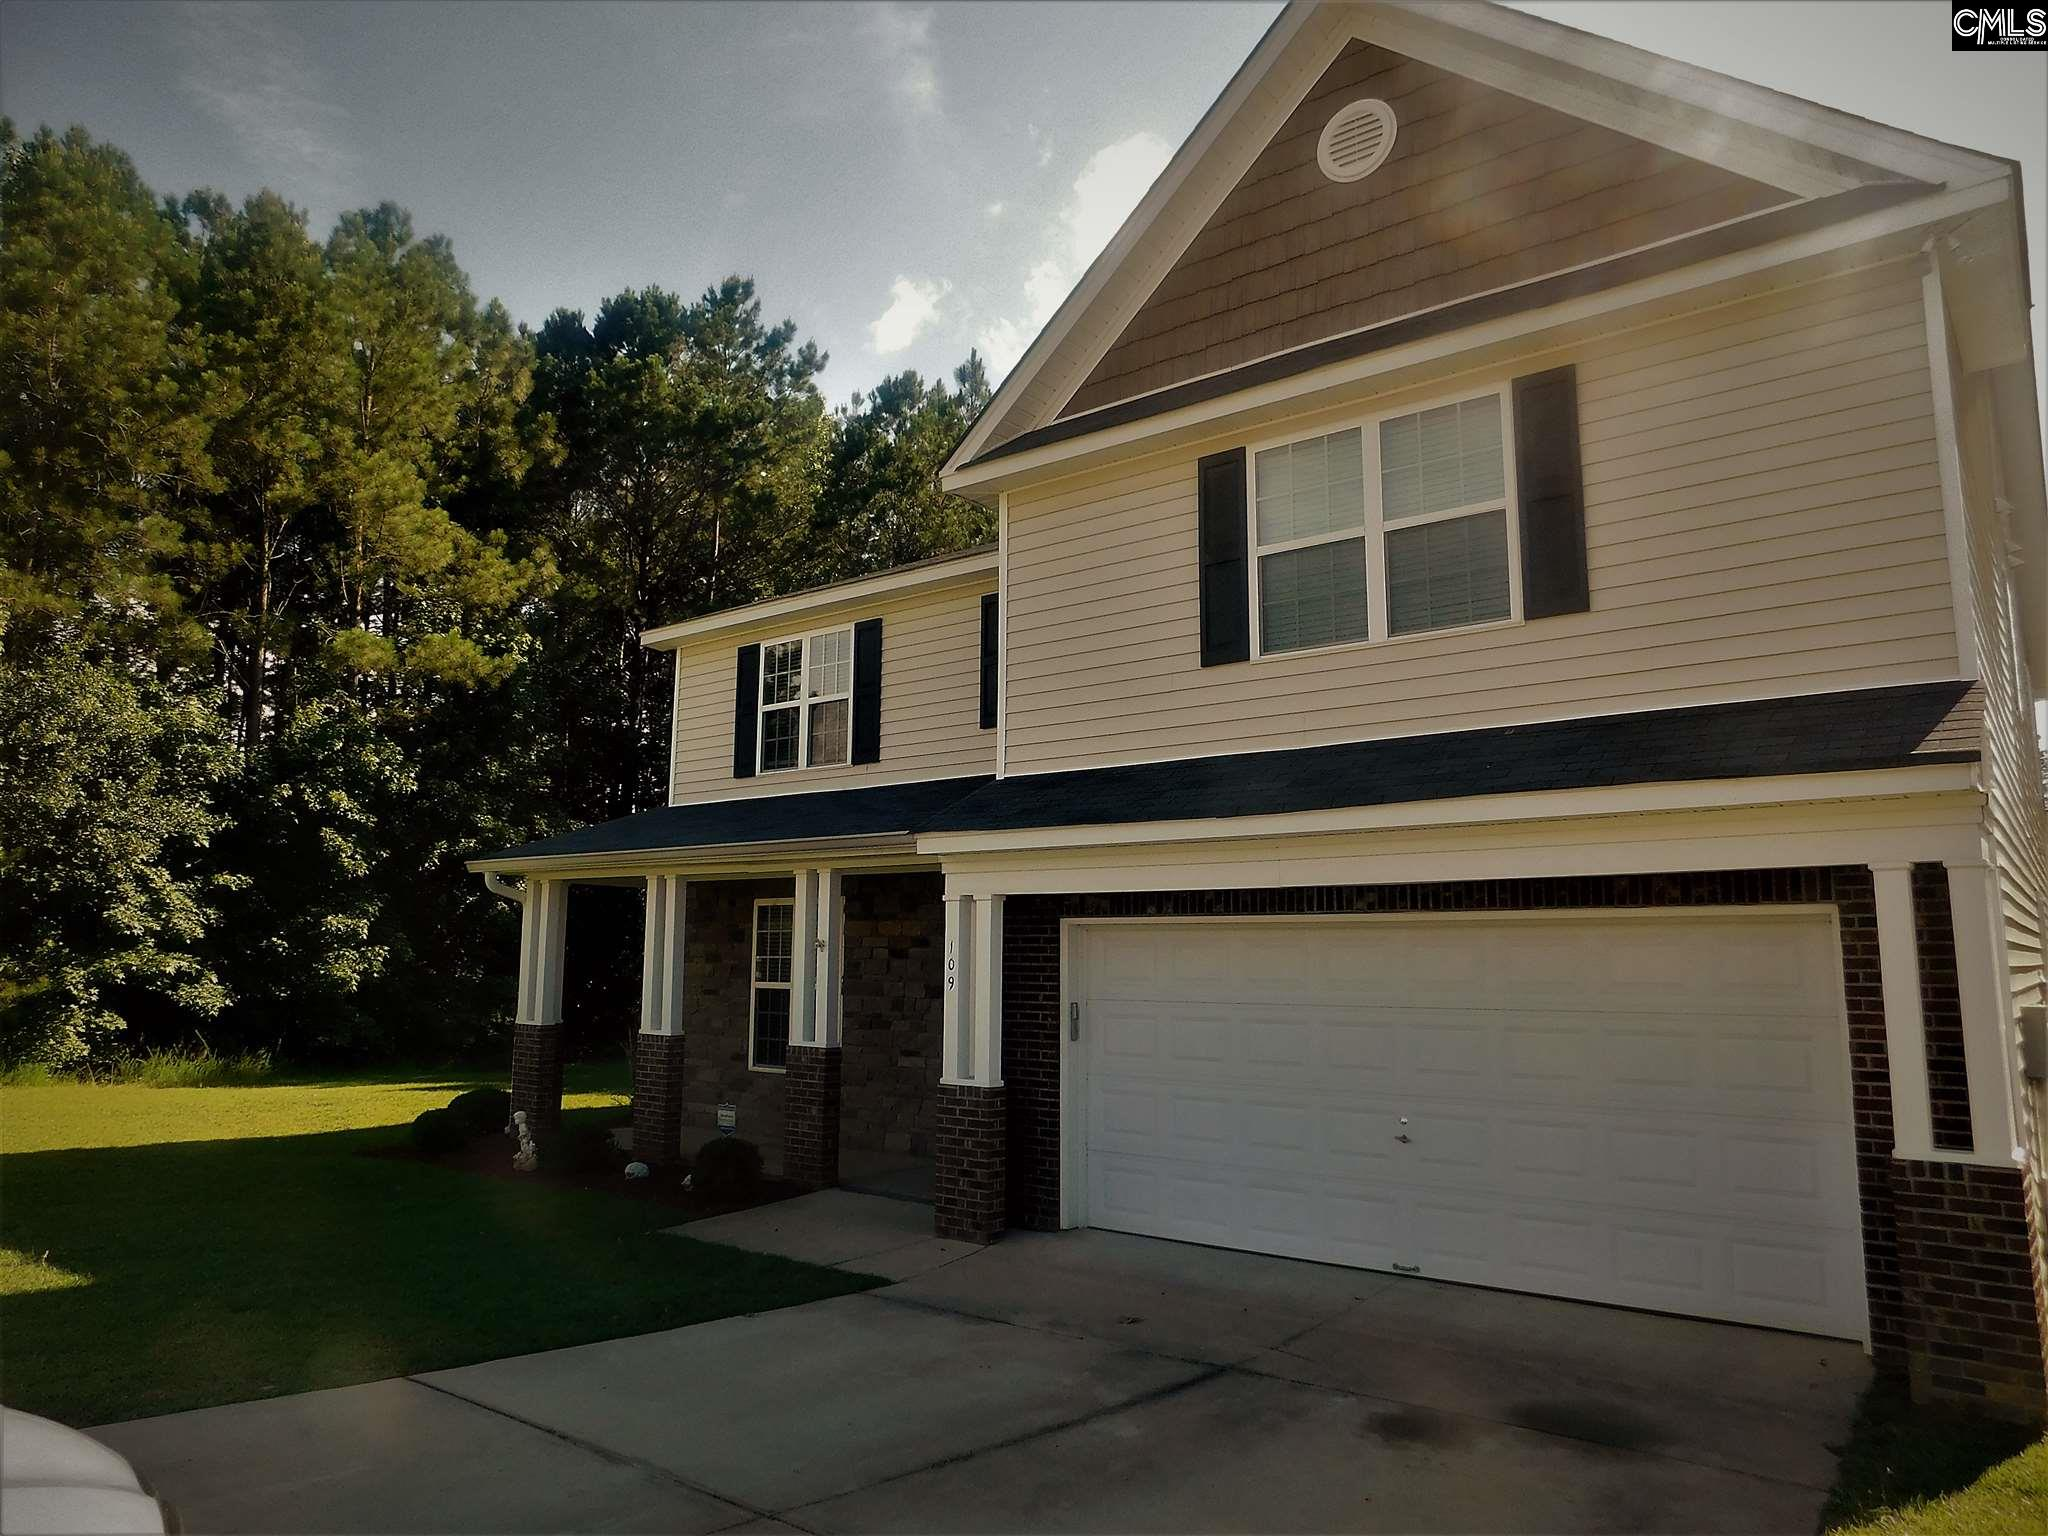 109 Thomaston Columbia, SC 29229-8191